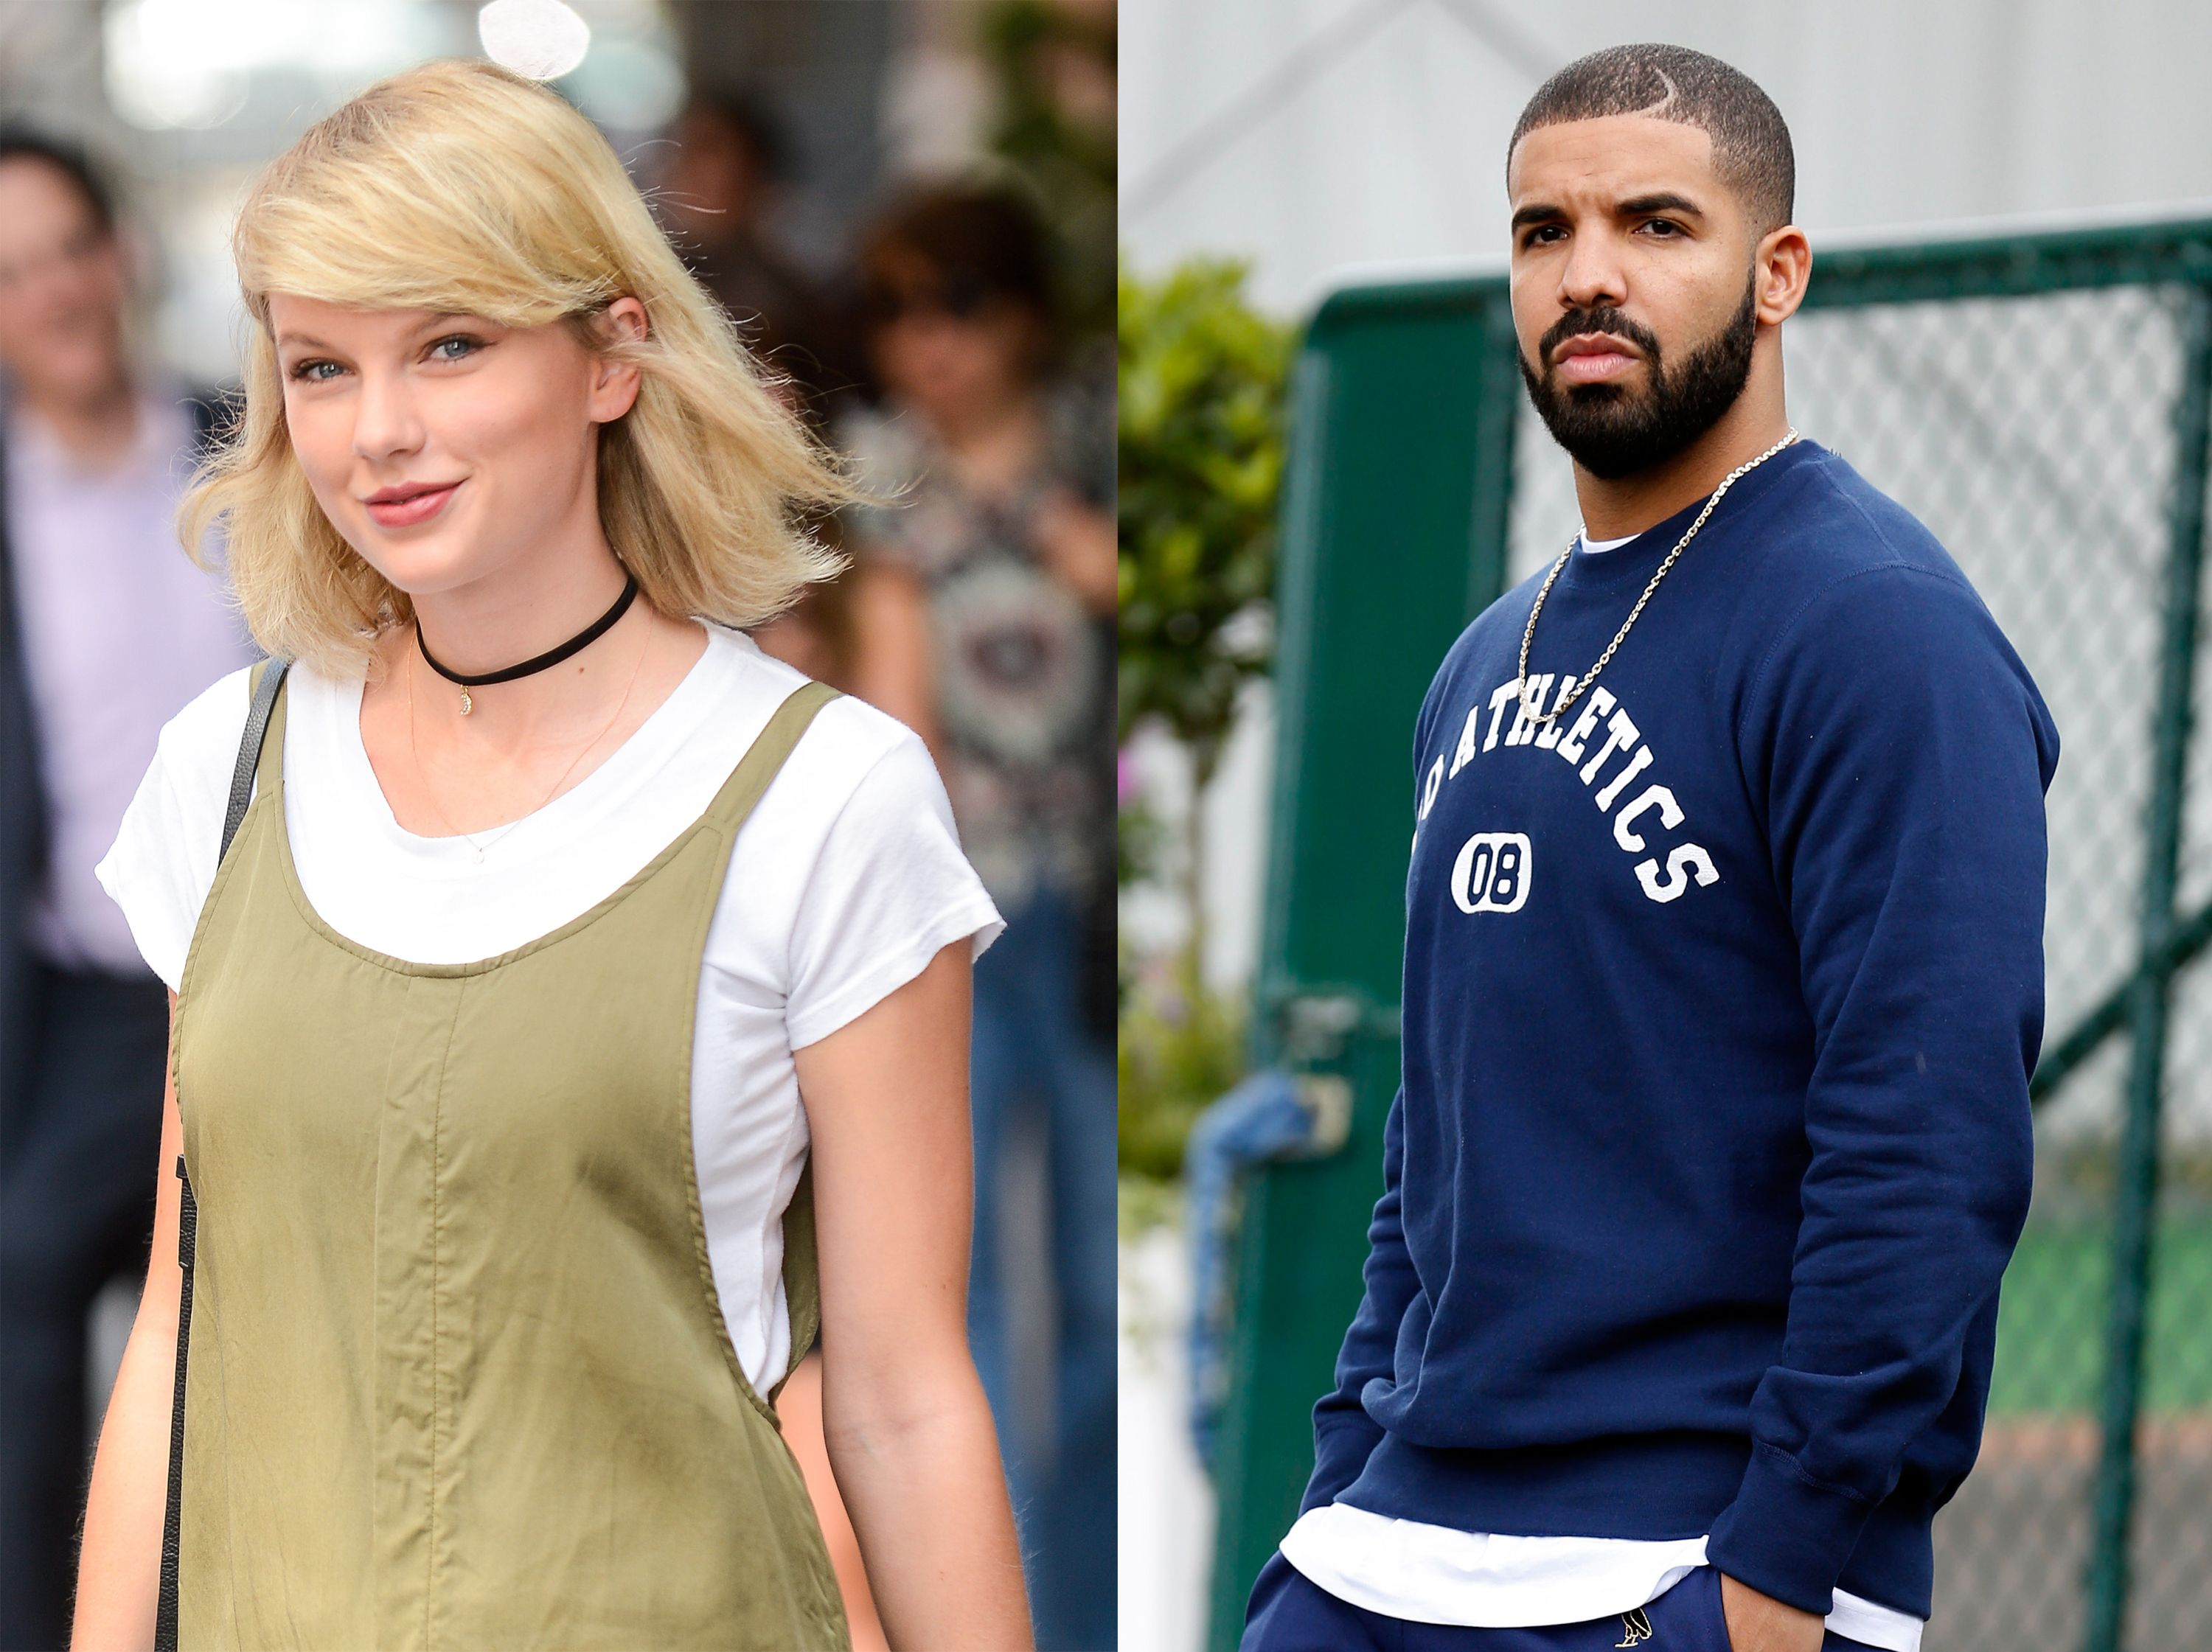 Why Taylor Swift And Drake Have Been Hanging Out So Much